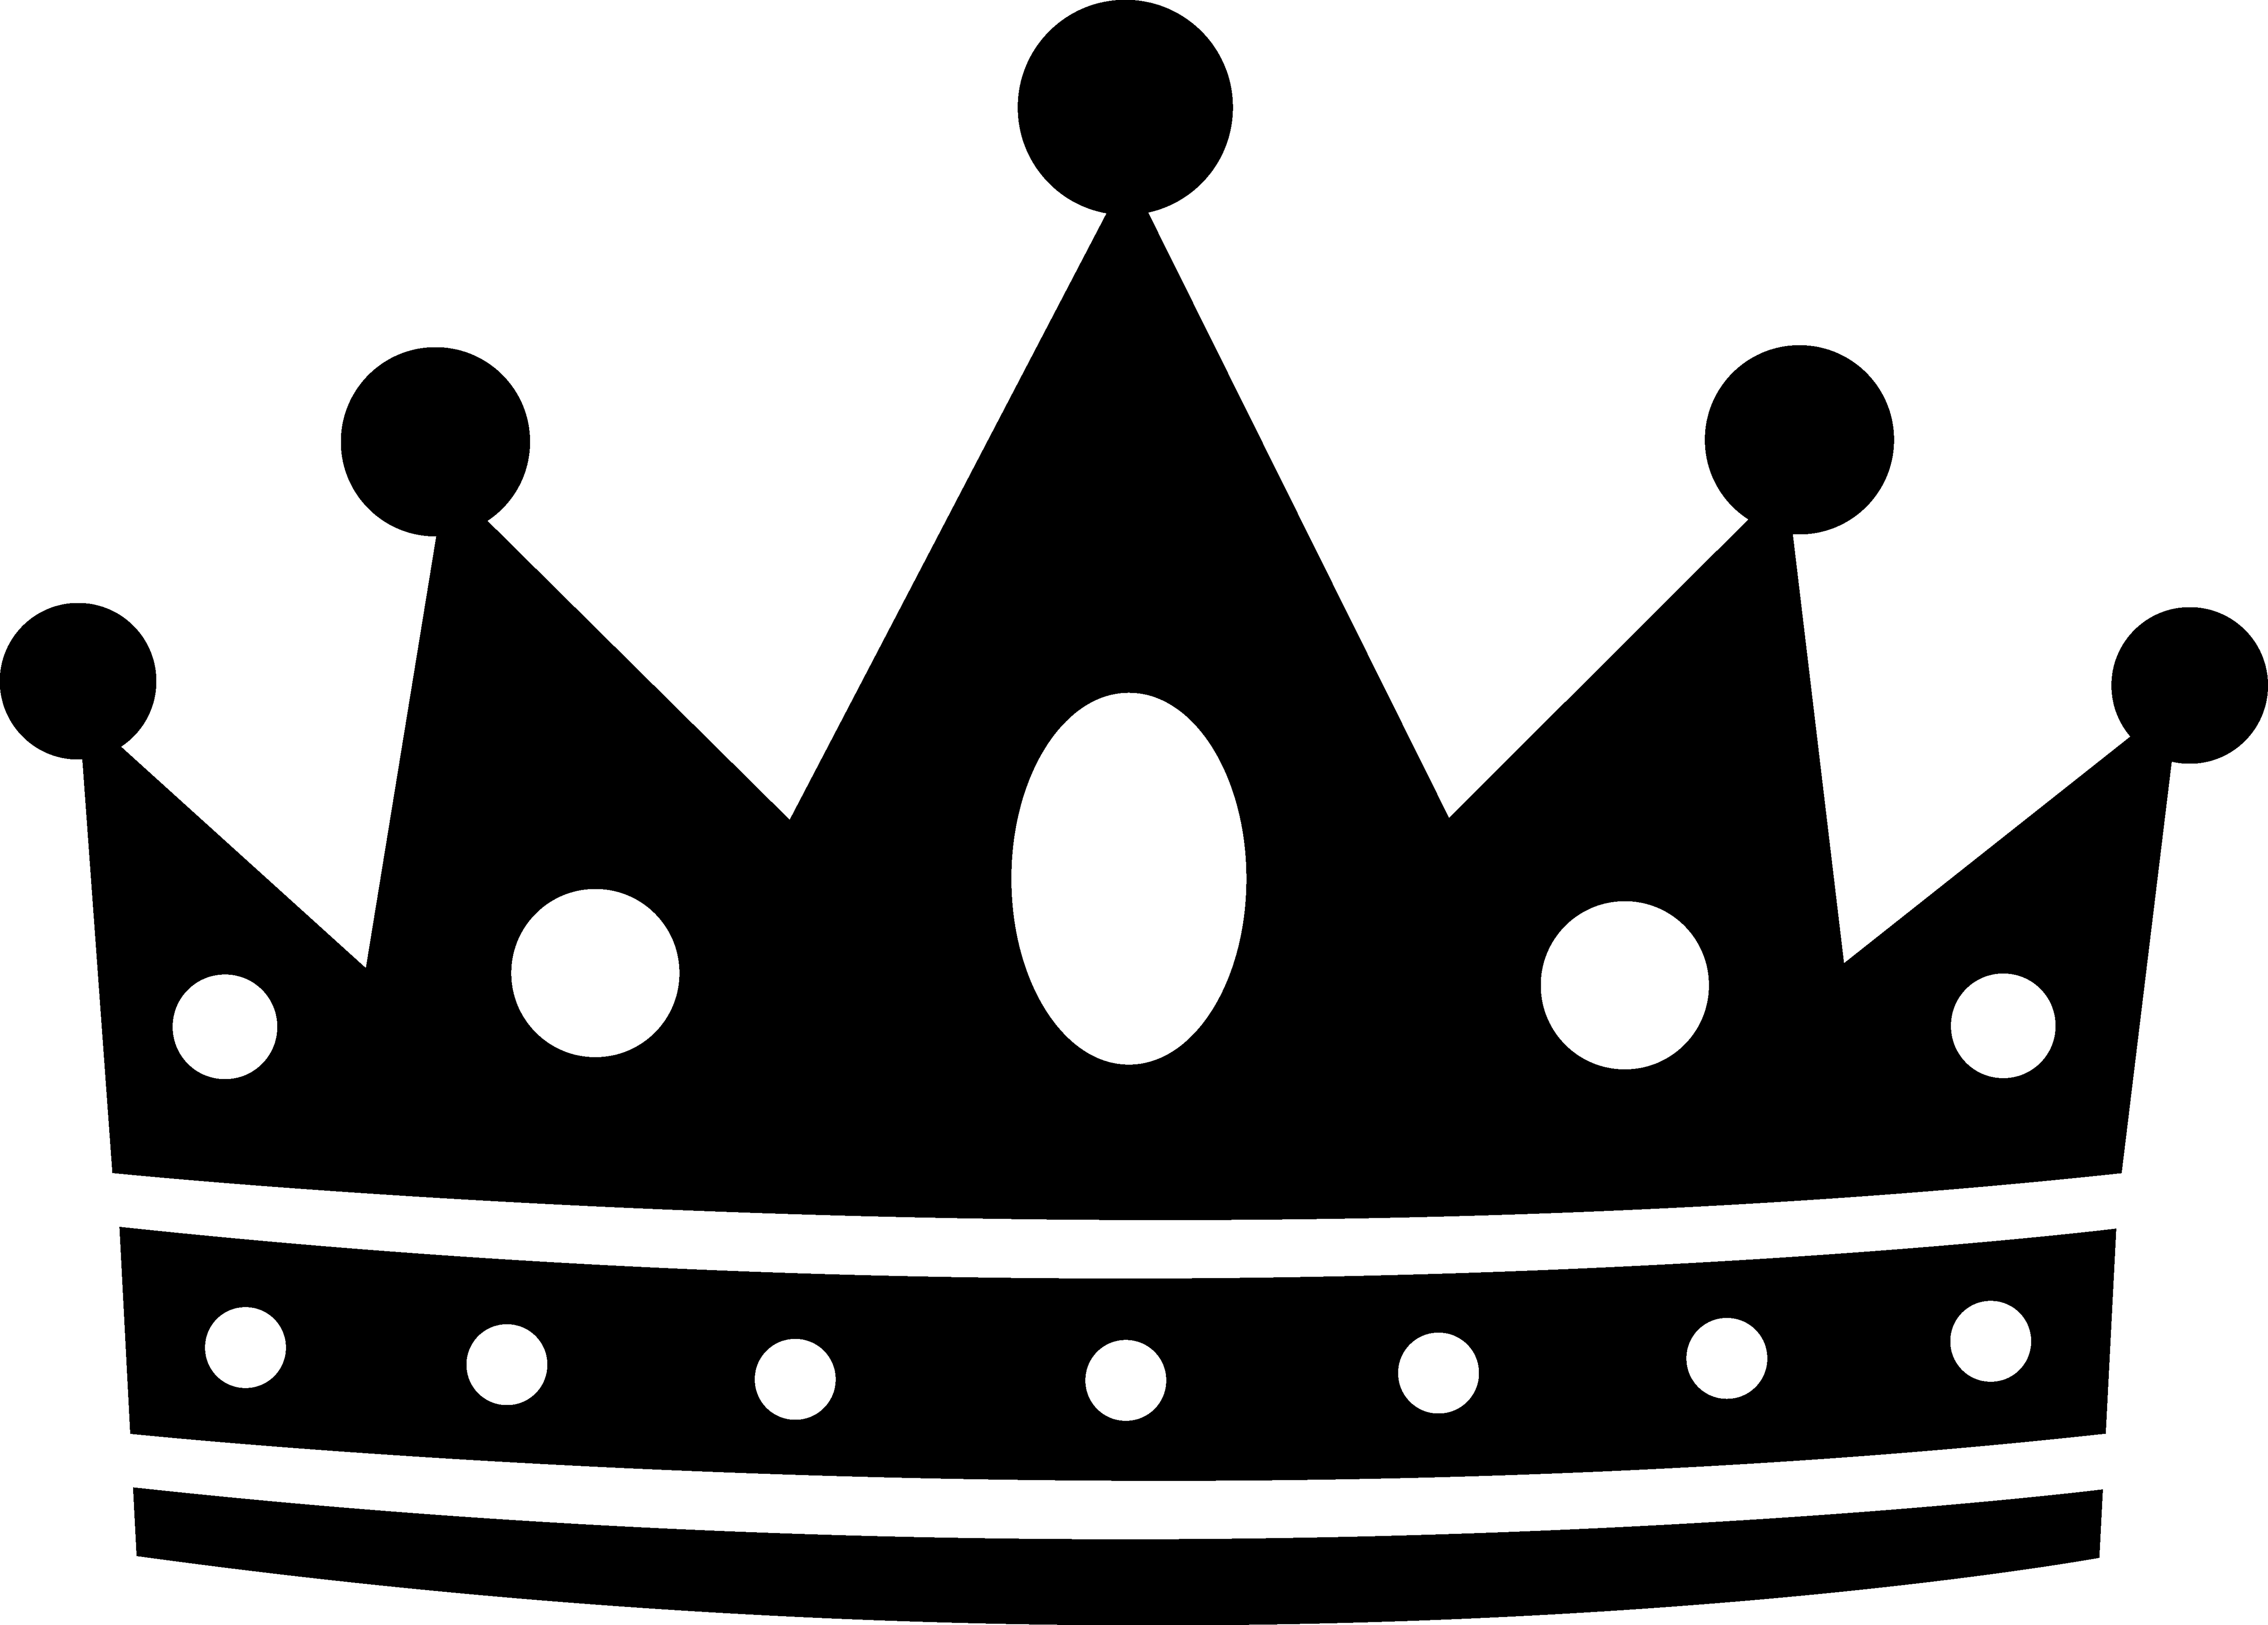 kings crown png hd transparent kings crown hd png images pluspng